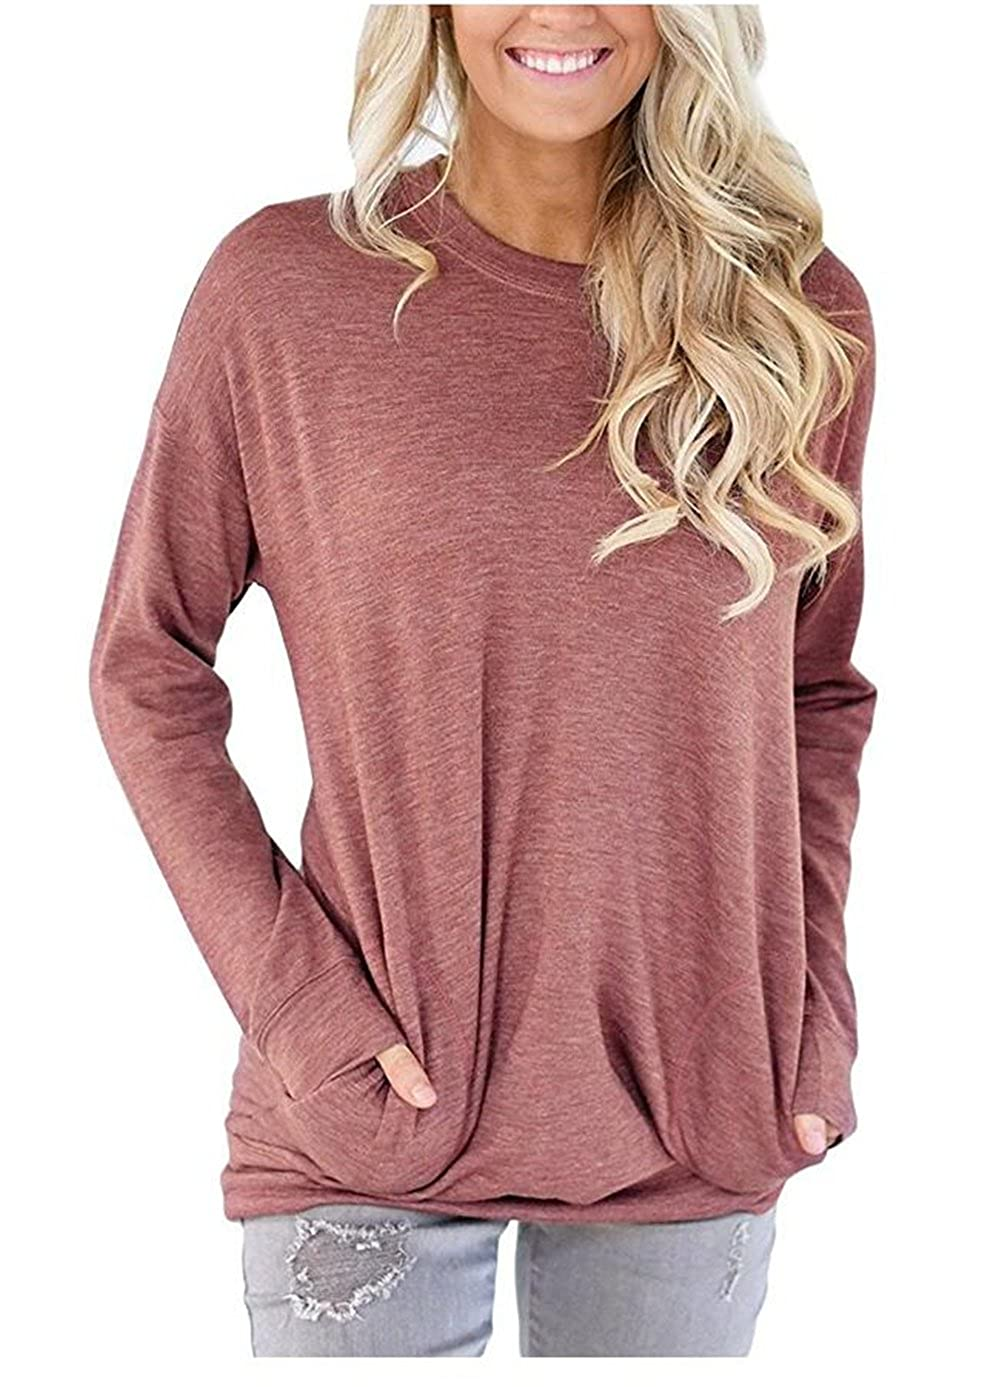 onlypuff Women's Casual Solid Long Sleeve Tunic Tops Pockets ca-YS0015-L&S